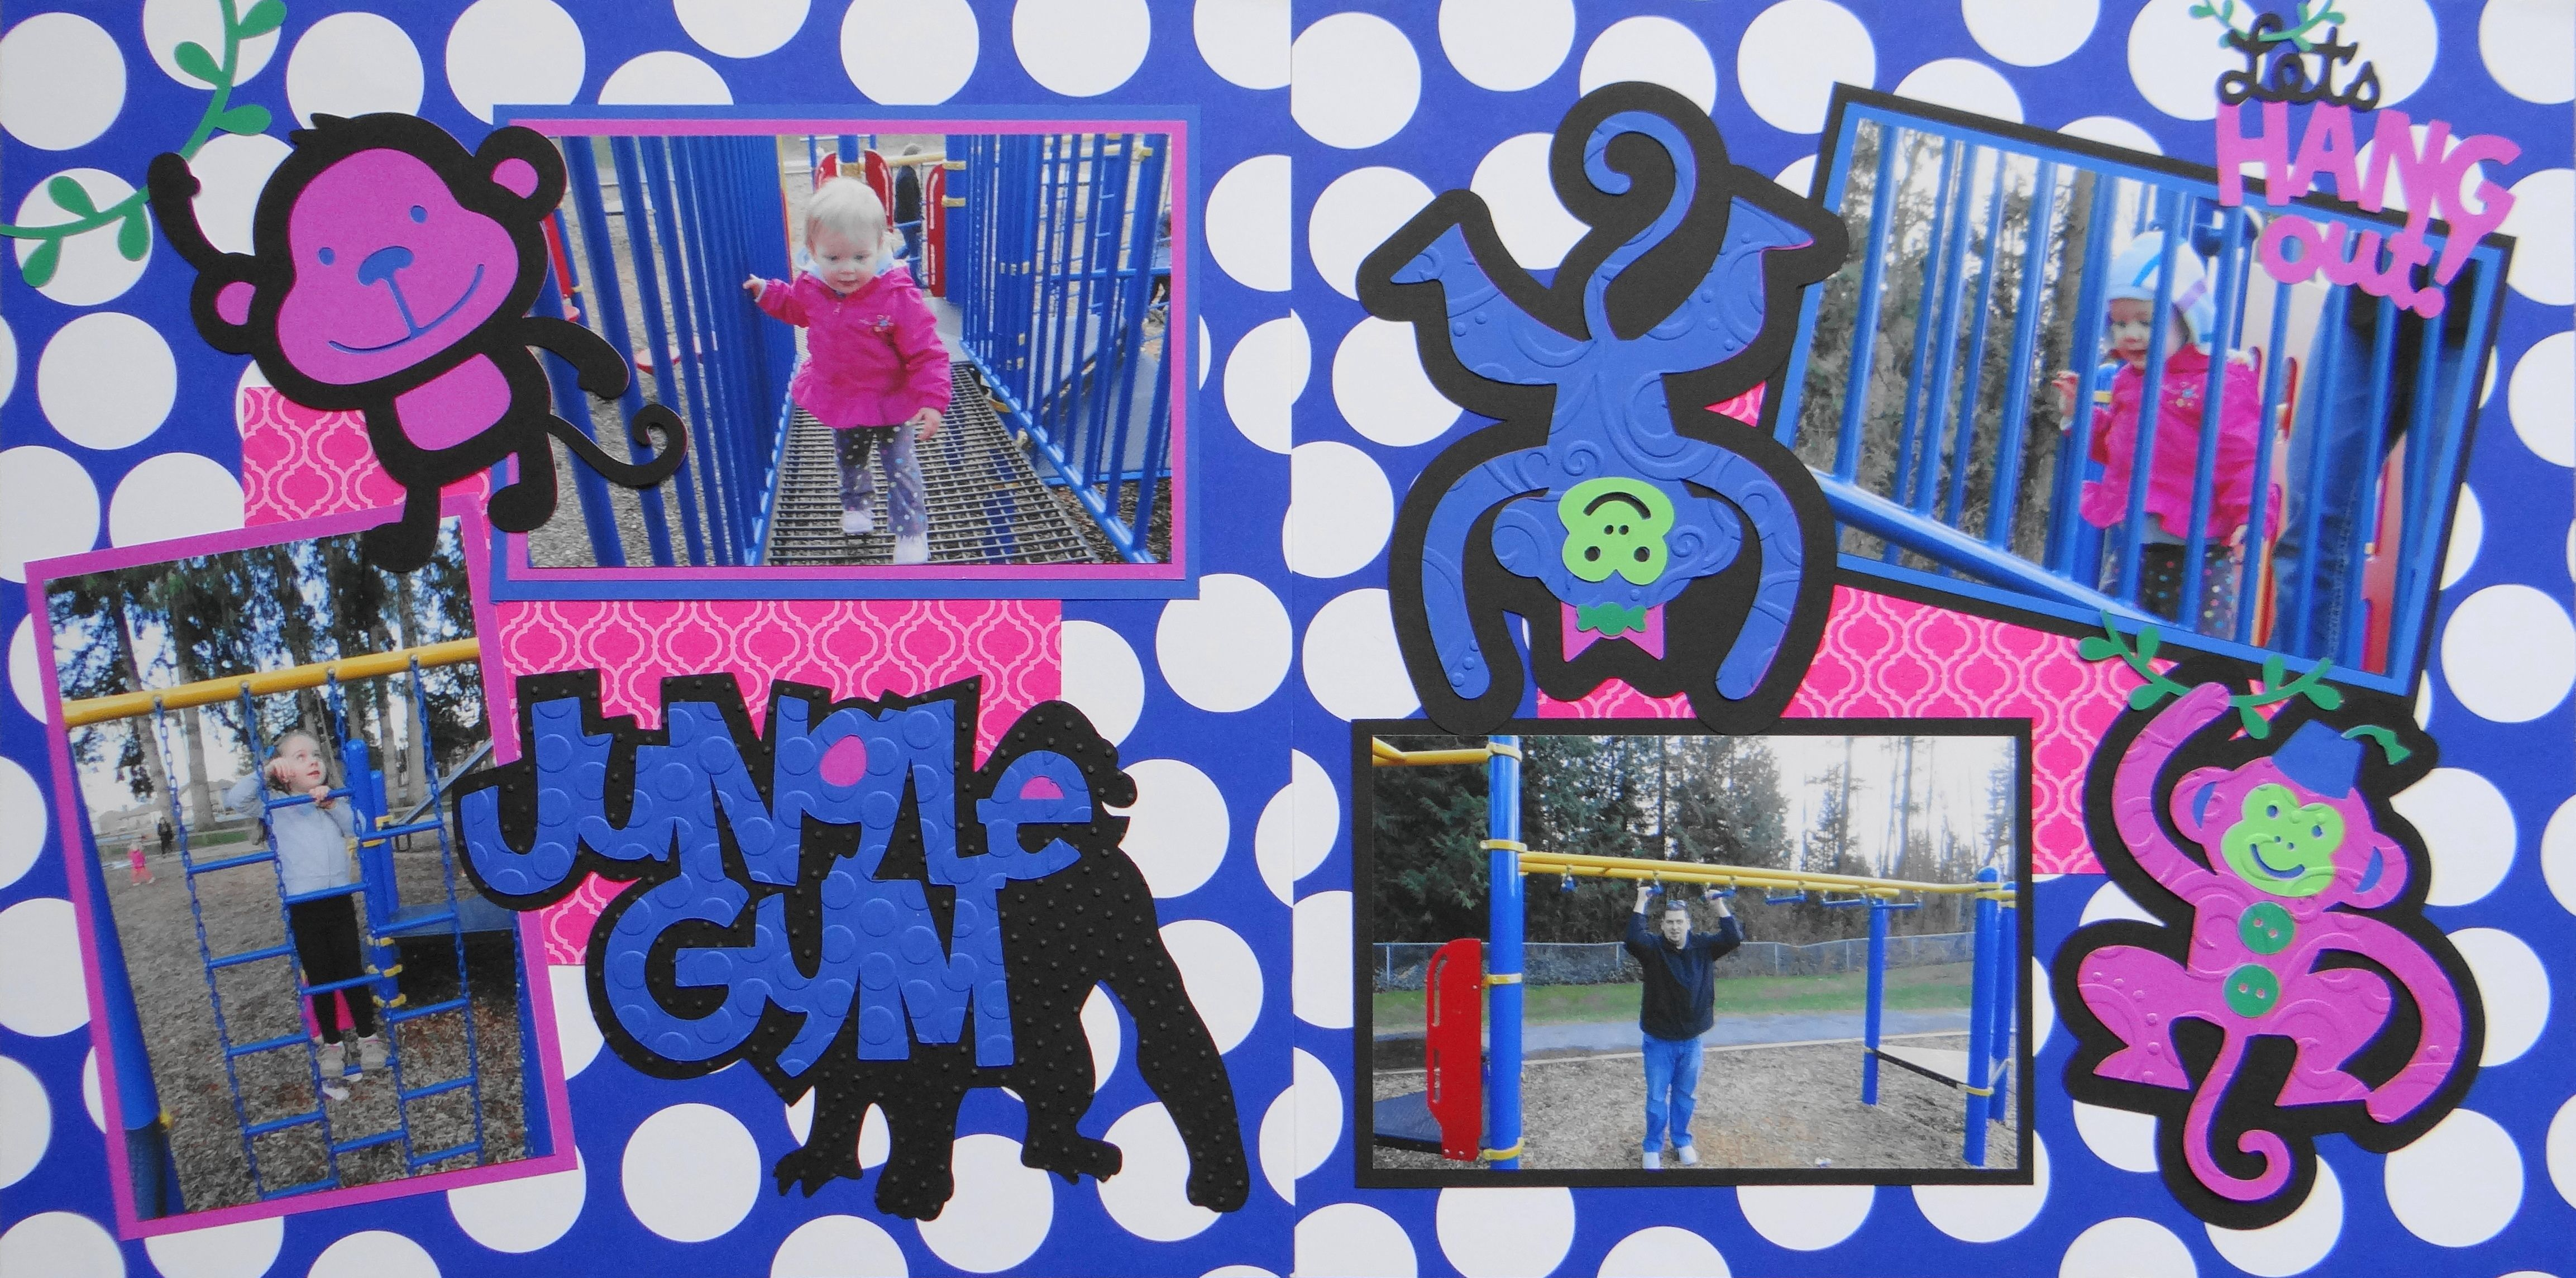 Jungle scrapbook ideas - Scrapbook Page Jungle Gym At The Park 2 Page Girl Or Boy Layout With